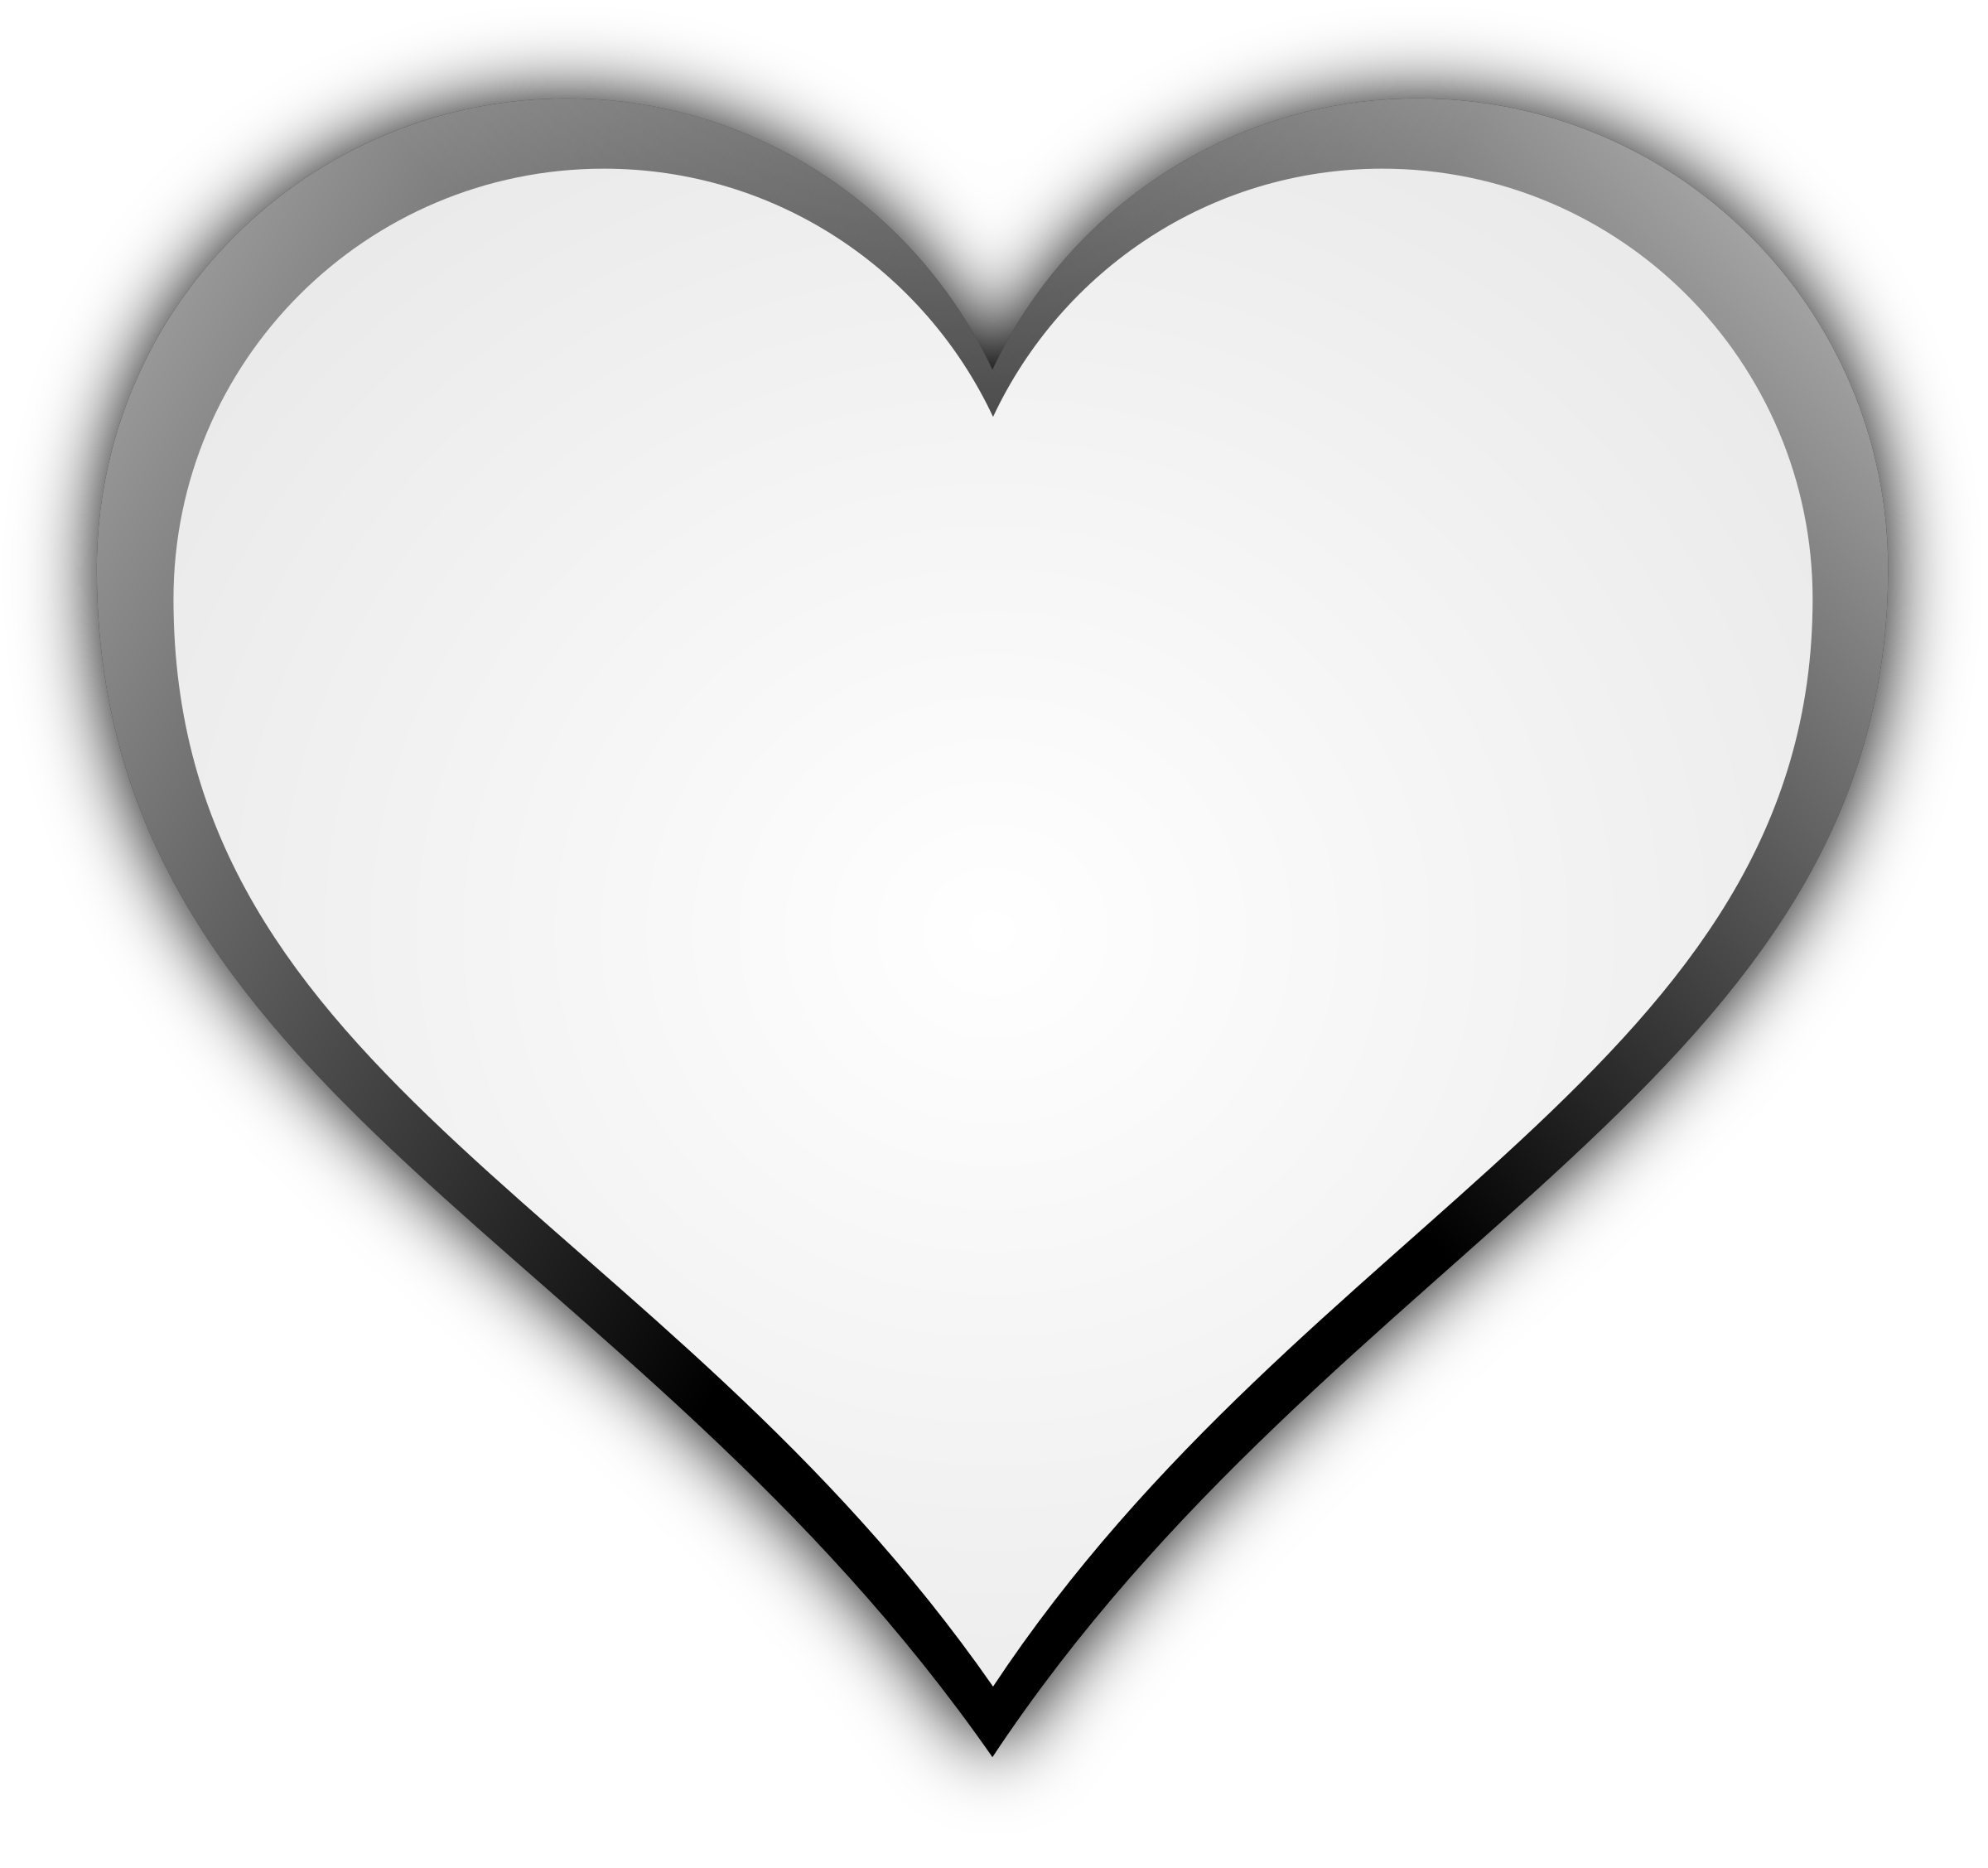 Clipart hearts map. Heart